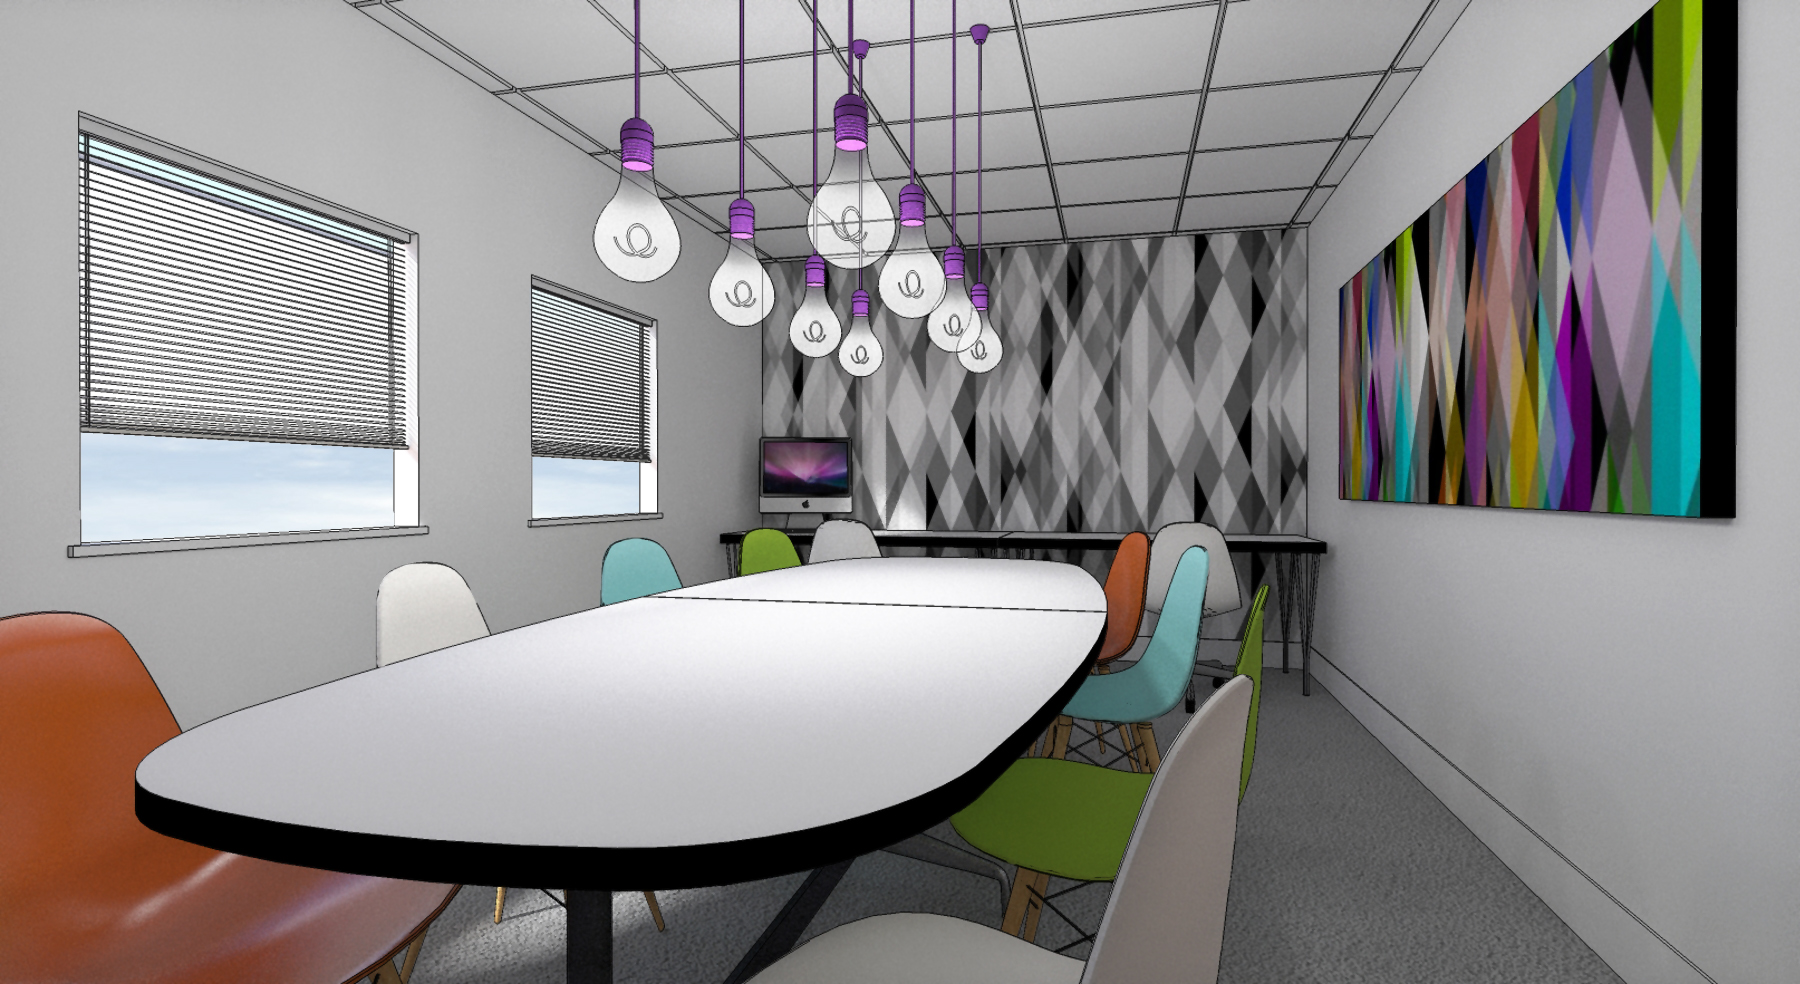 Interior design and architecture news and views for Creative agency interior design